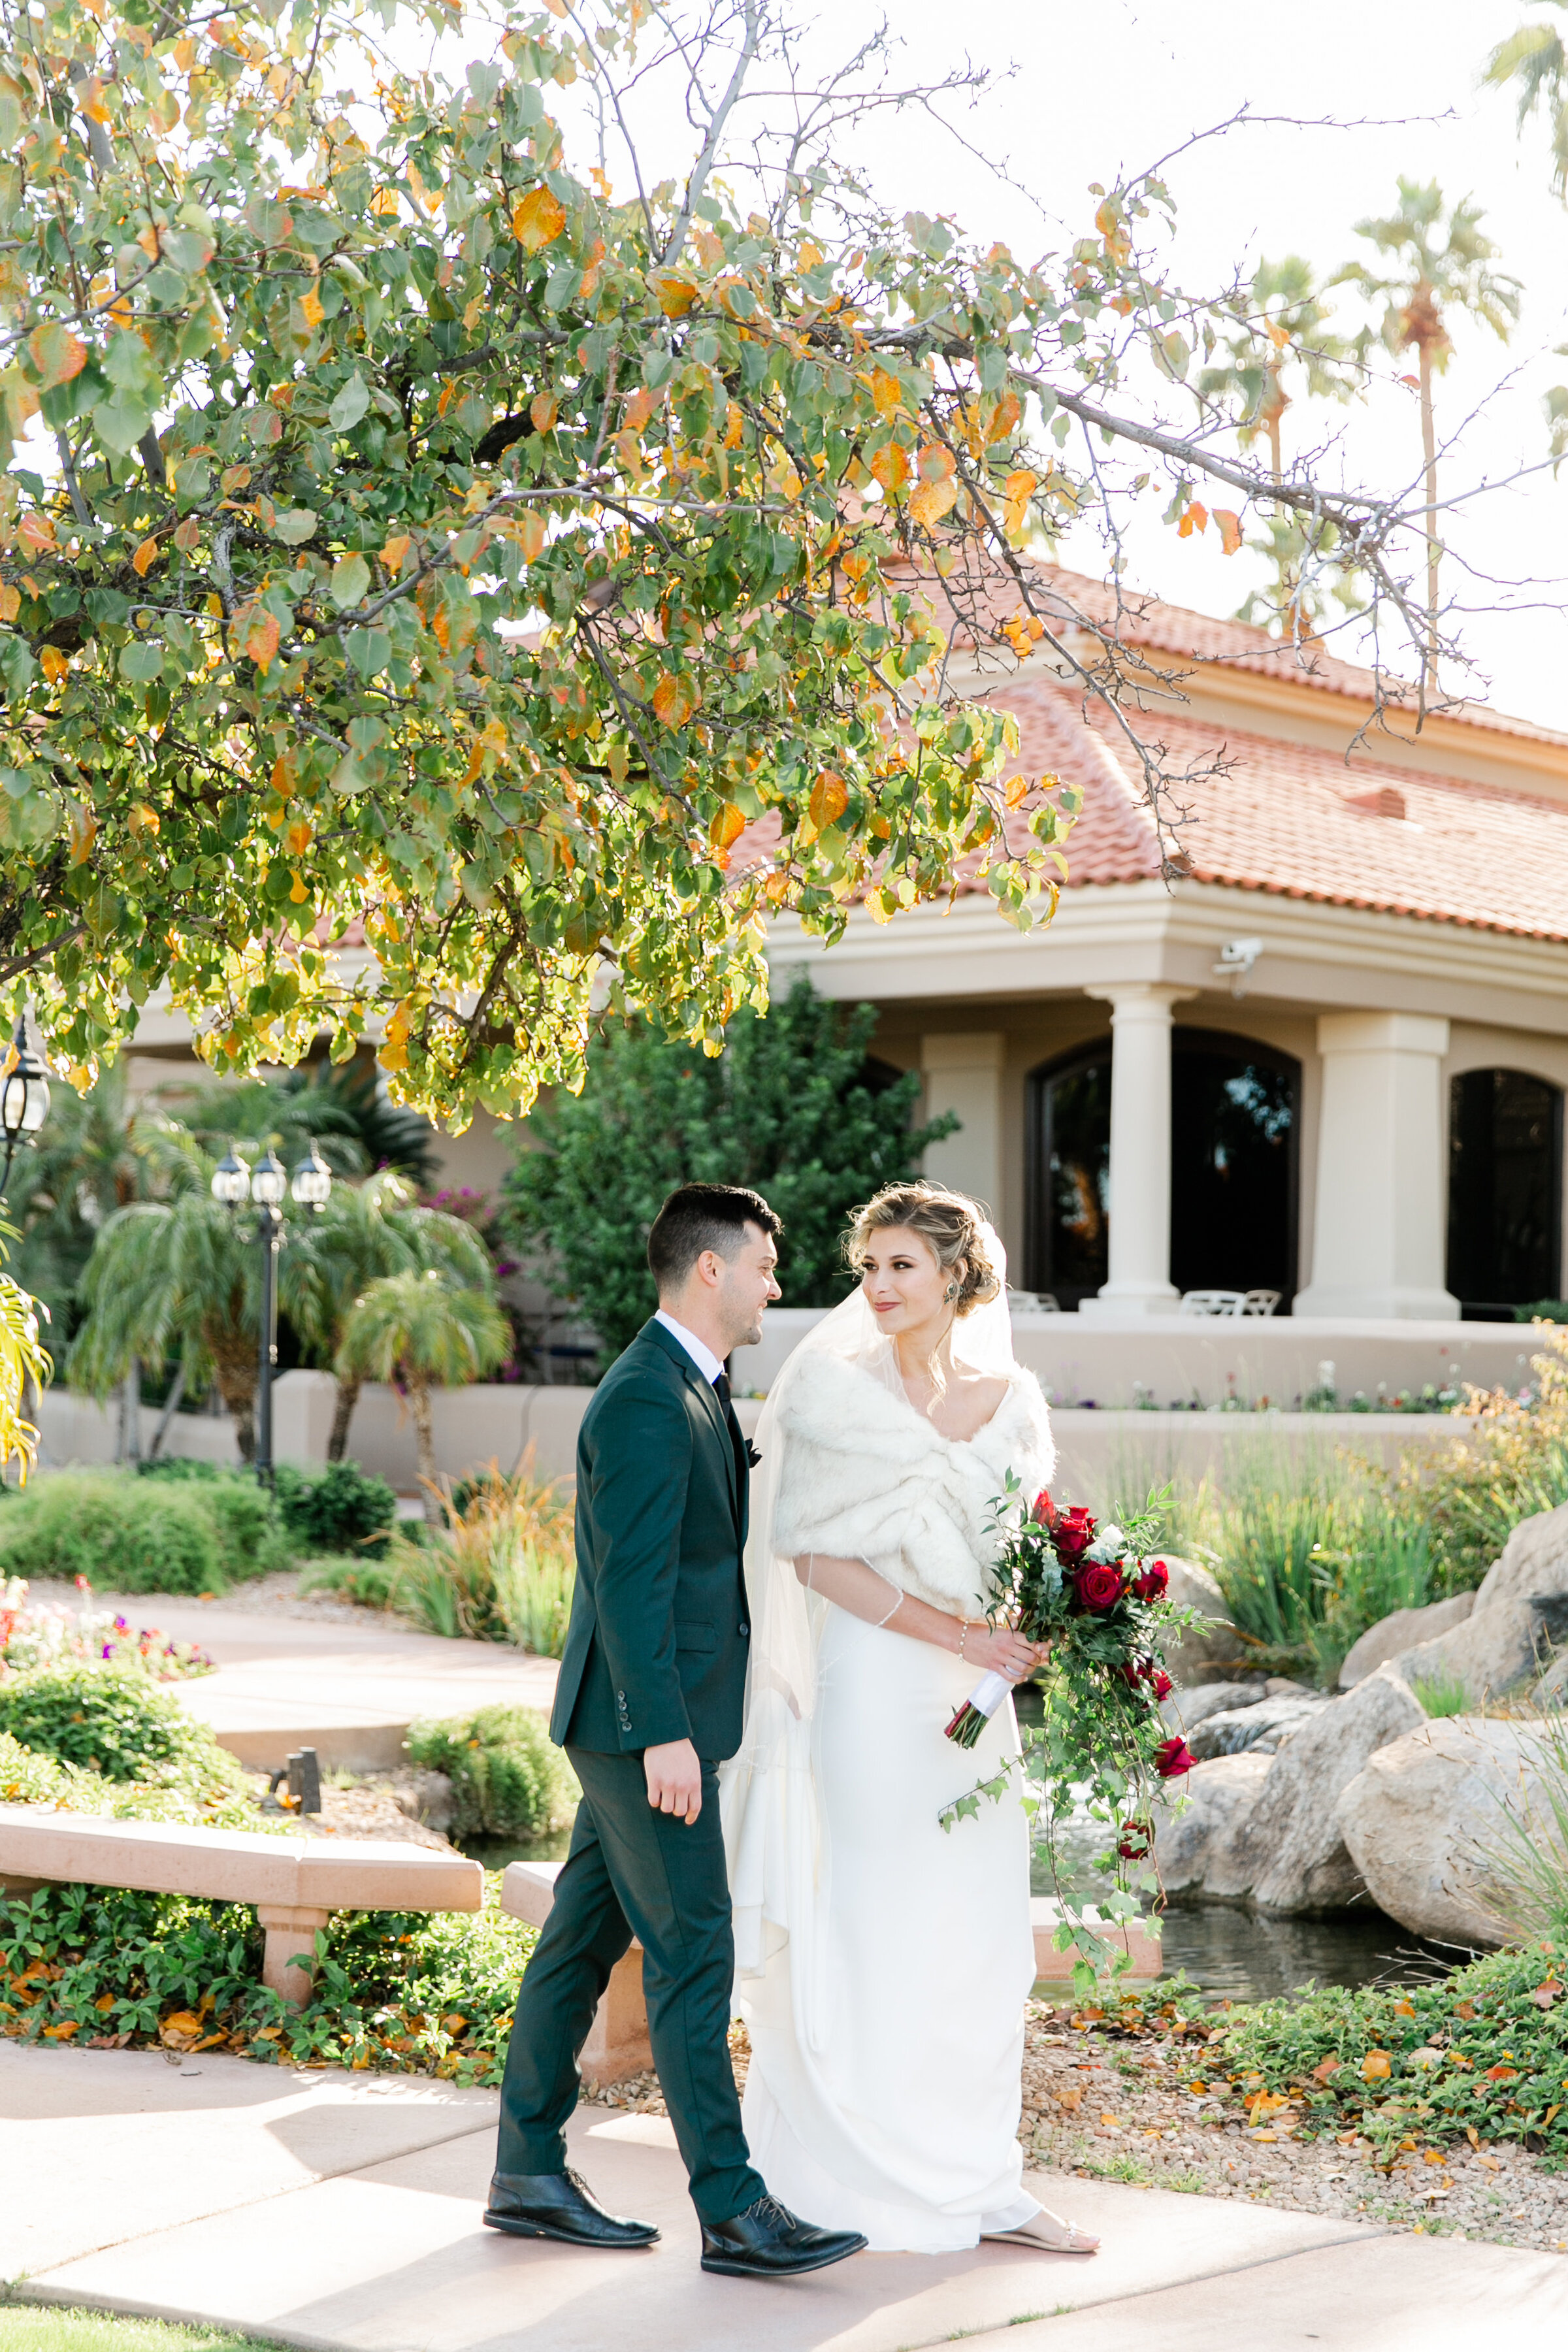 Karlie Colleen Photography - Gilbert Arizona Wedding - Val Vista Lakes - Brynne & Josh-440